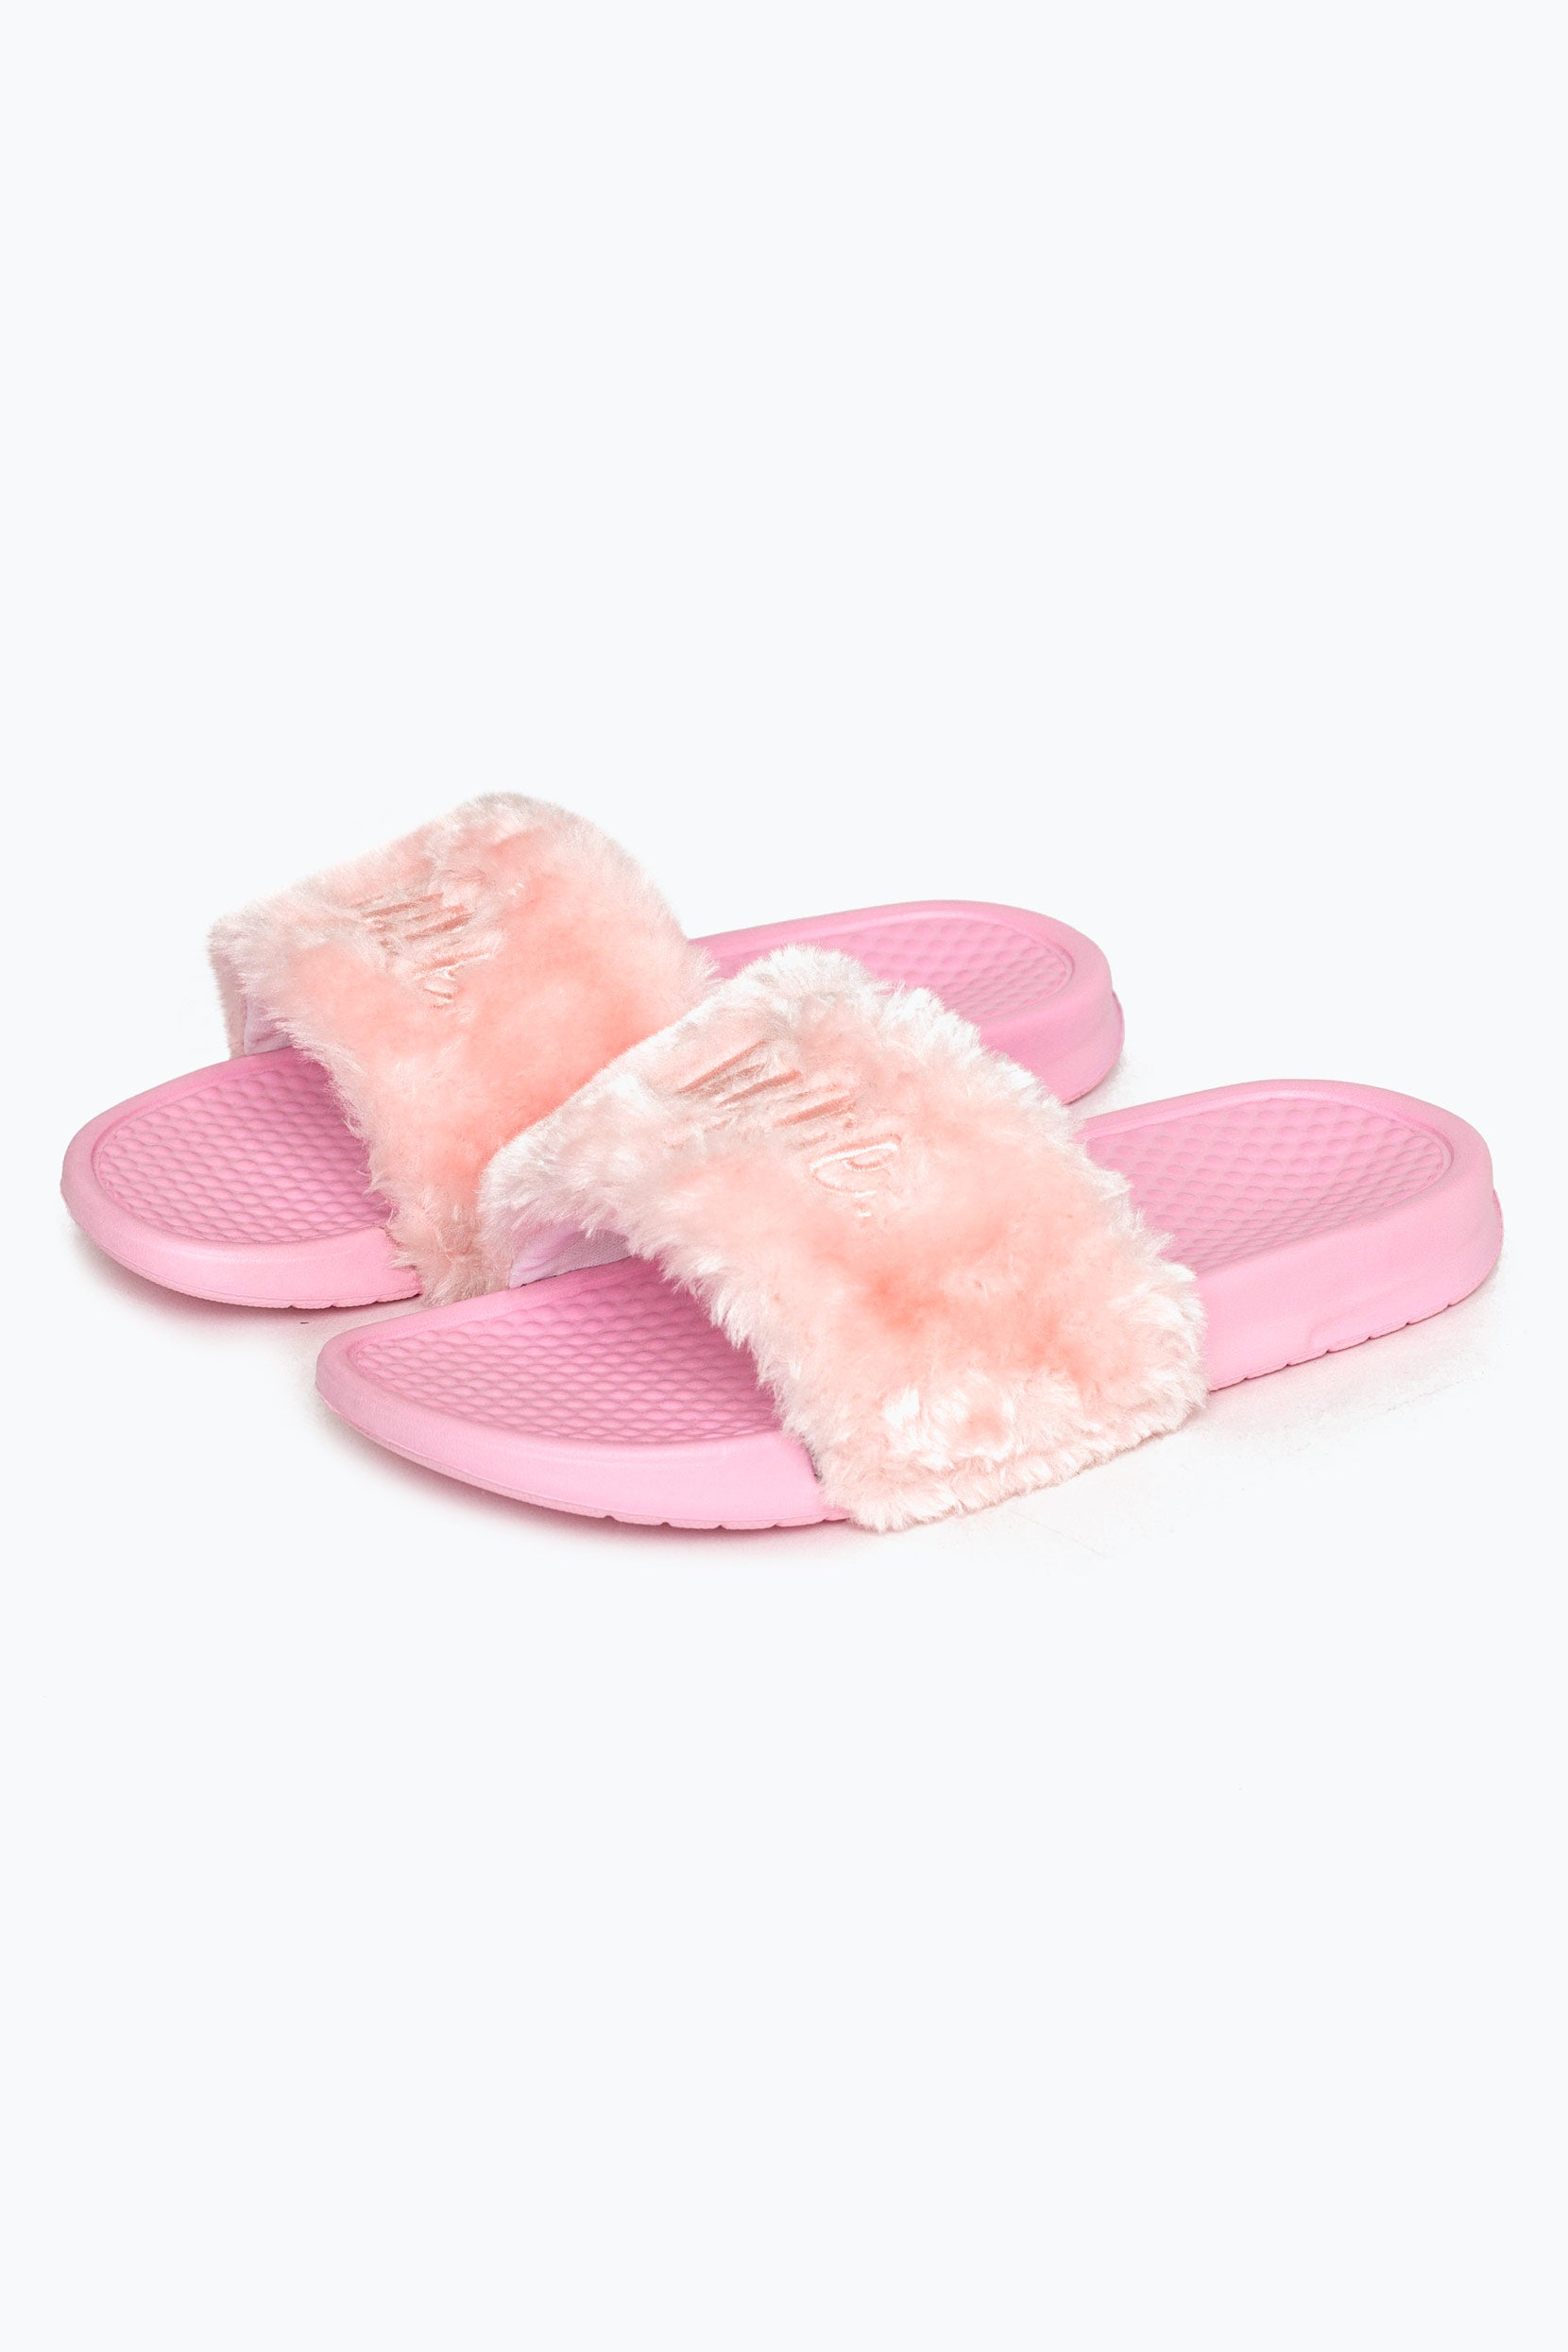 Hype Pink Fluffy Script Sliders | Size 5